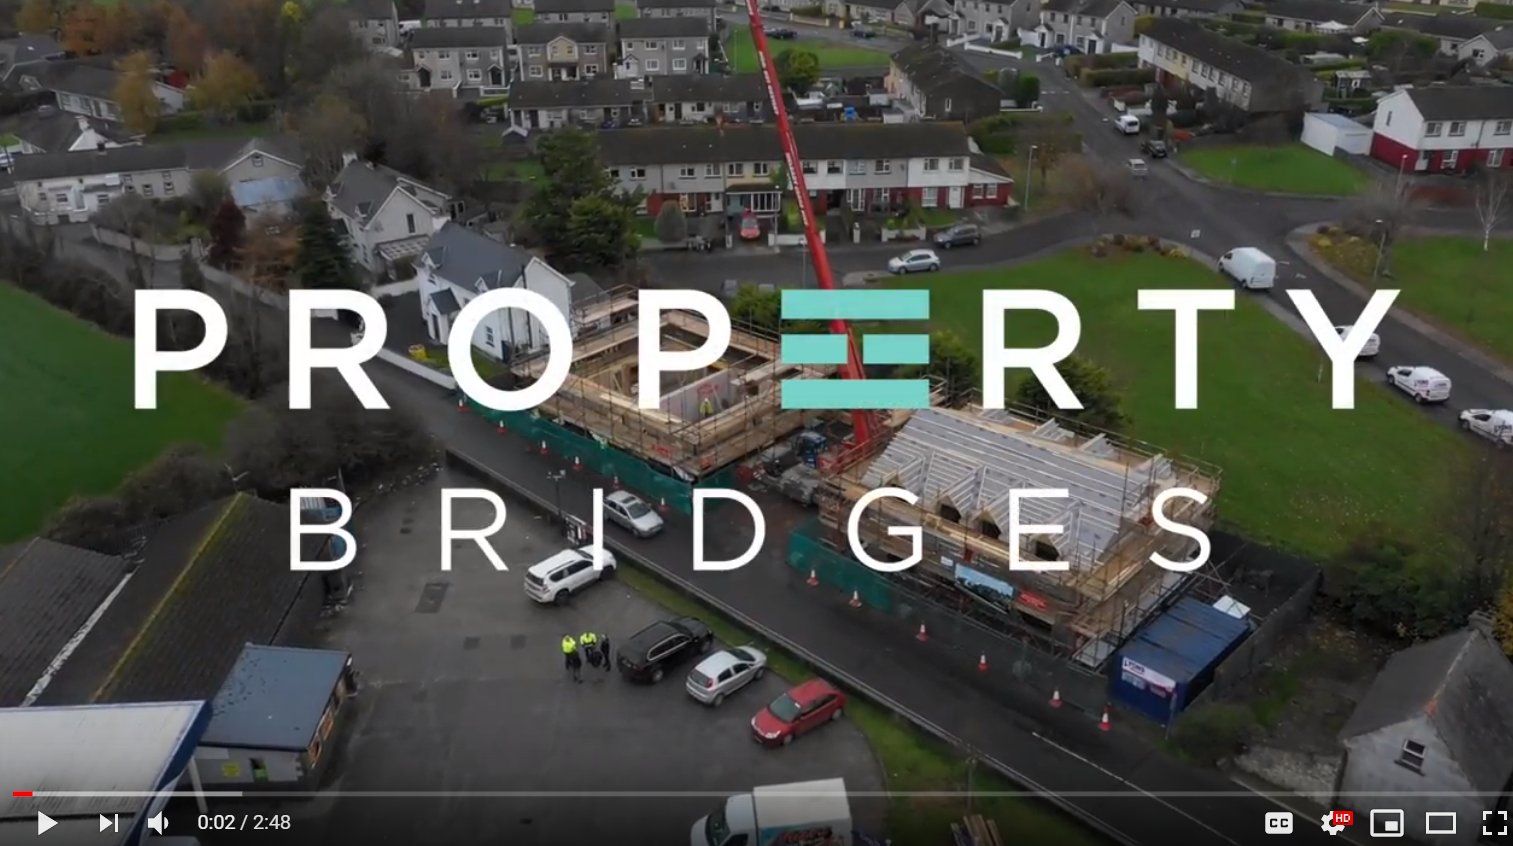 WATERFORD LIVE Nov 18 – Construction work underway on new social housing units near Waterford city